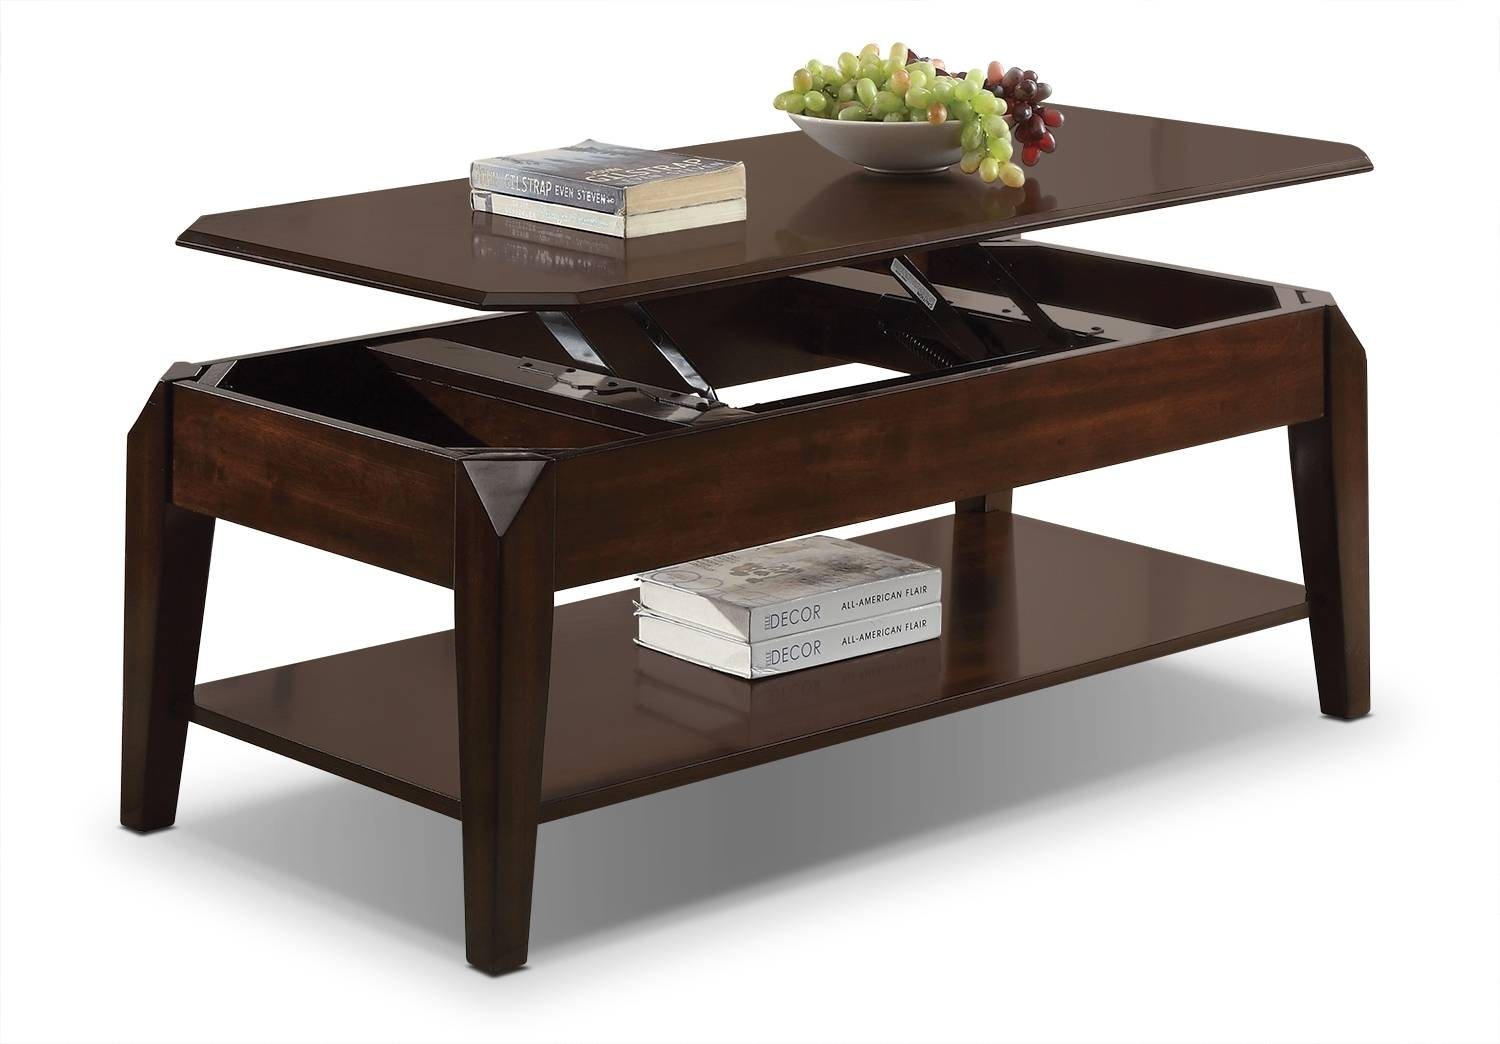 Docila Lift-Top Coffee Table - Espresso | Leon's throughout Lifting Coffee Tables (Image 10 of 30)